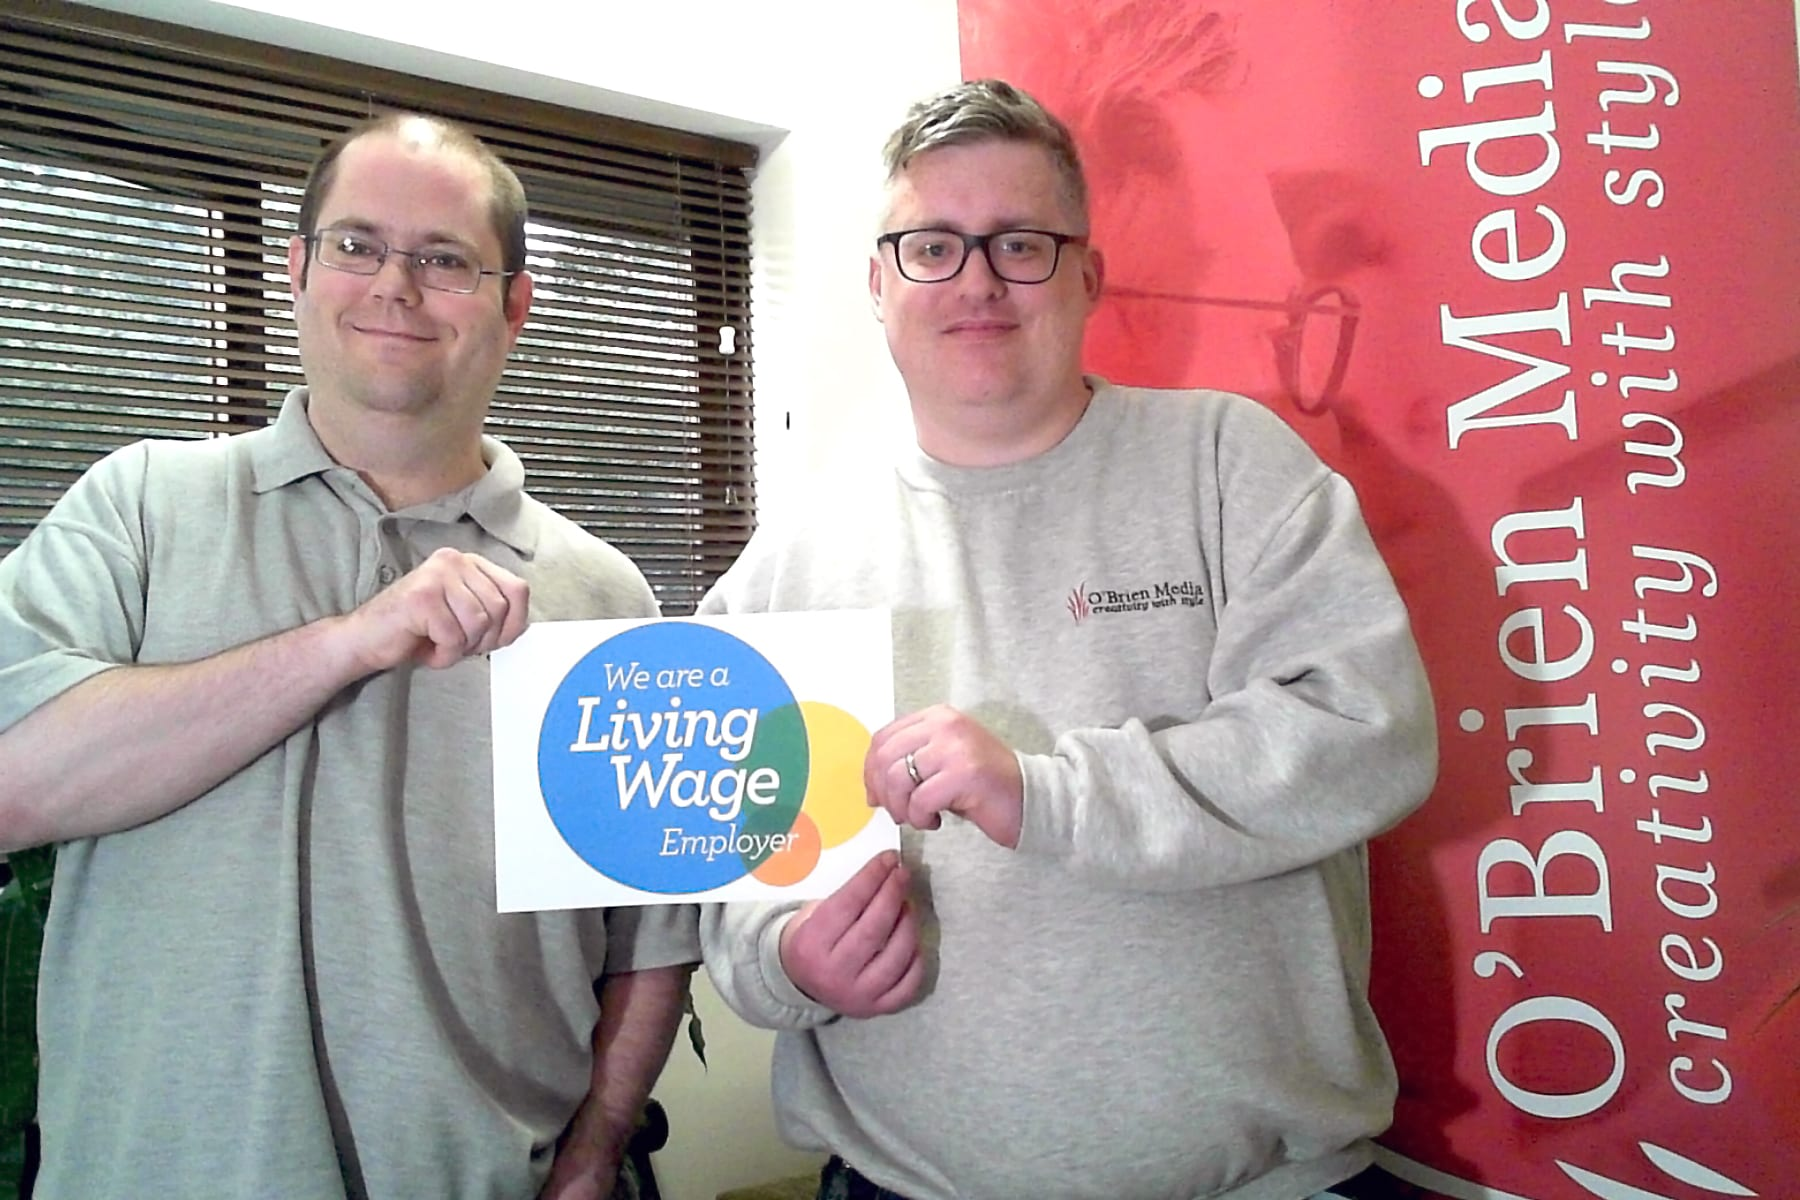 Andy Smart (left) and Chris Grant (right) - Living Wage Photo (PRESS)